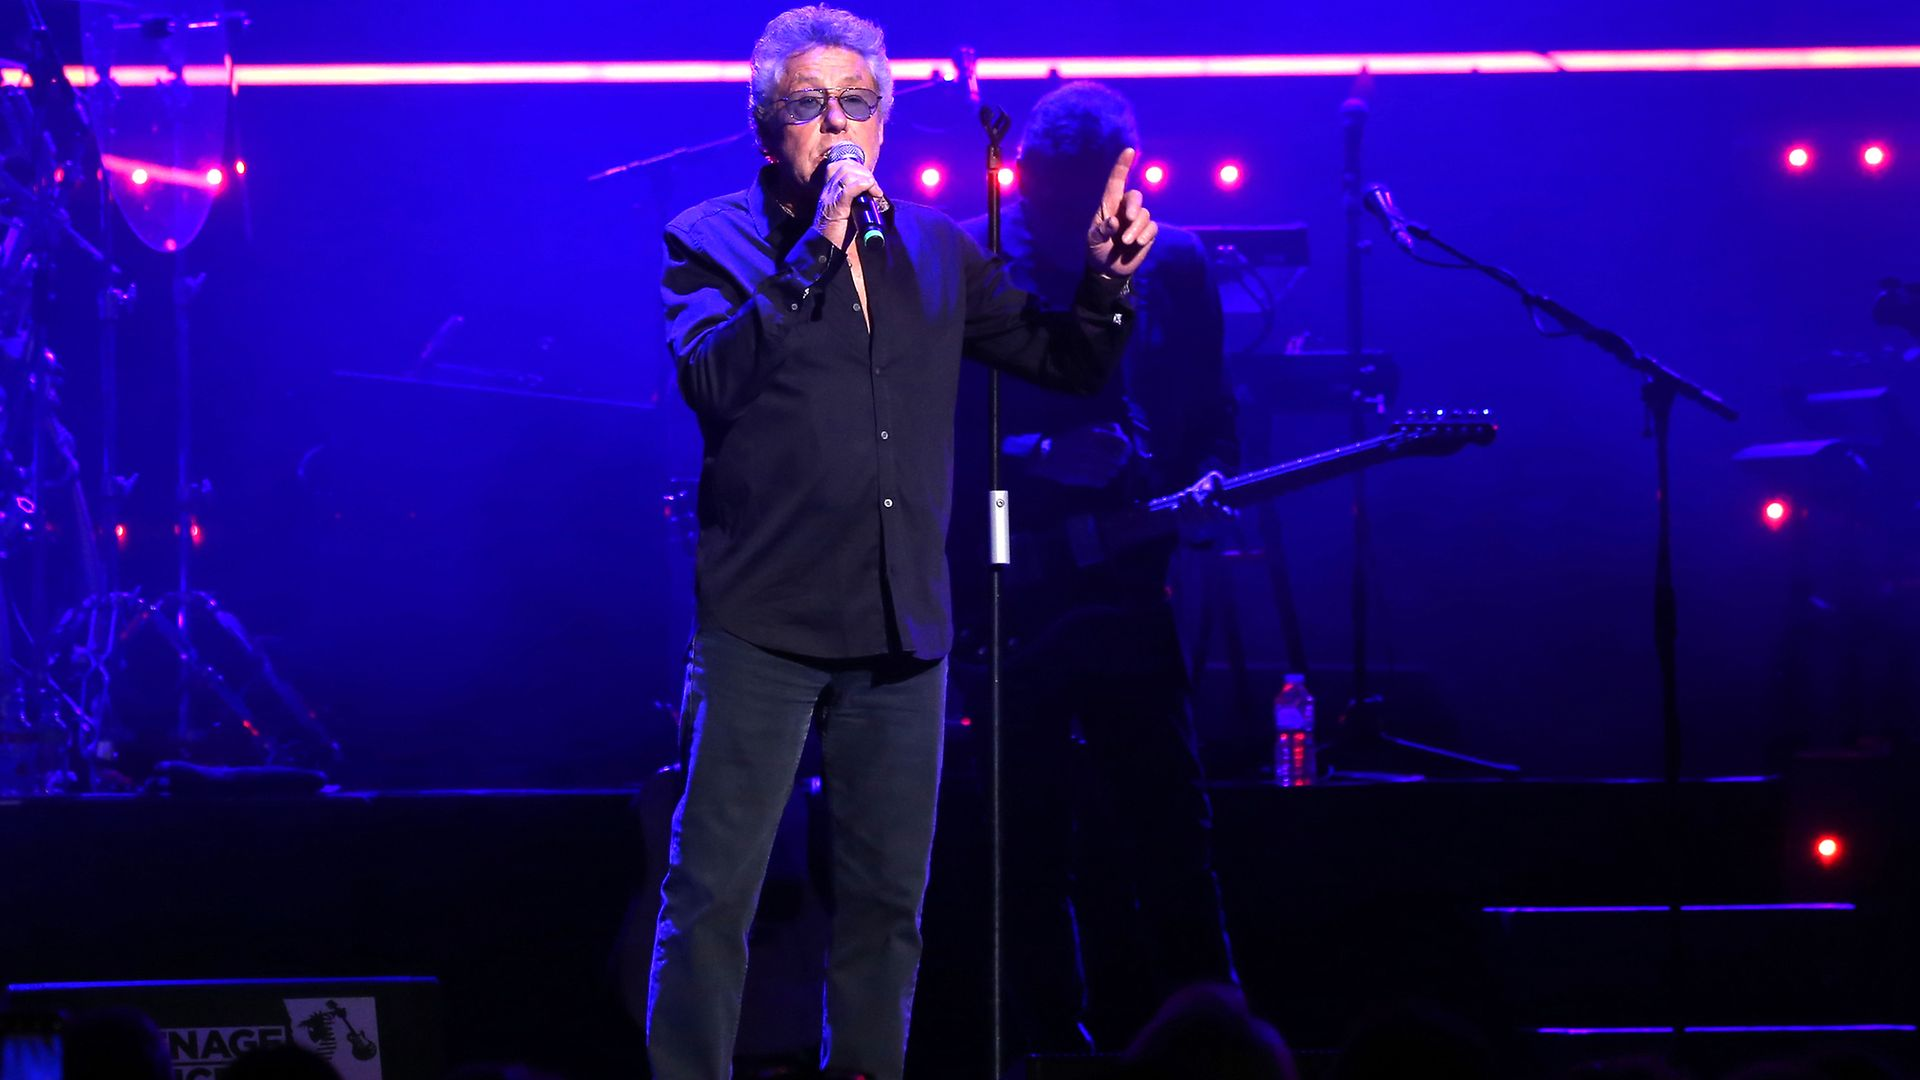 Roger Daltrey on the stage ahead of Take That performance at the Teenage Cancer Trust Concert, Royal Albert Hall, London - Credit: PA